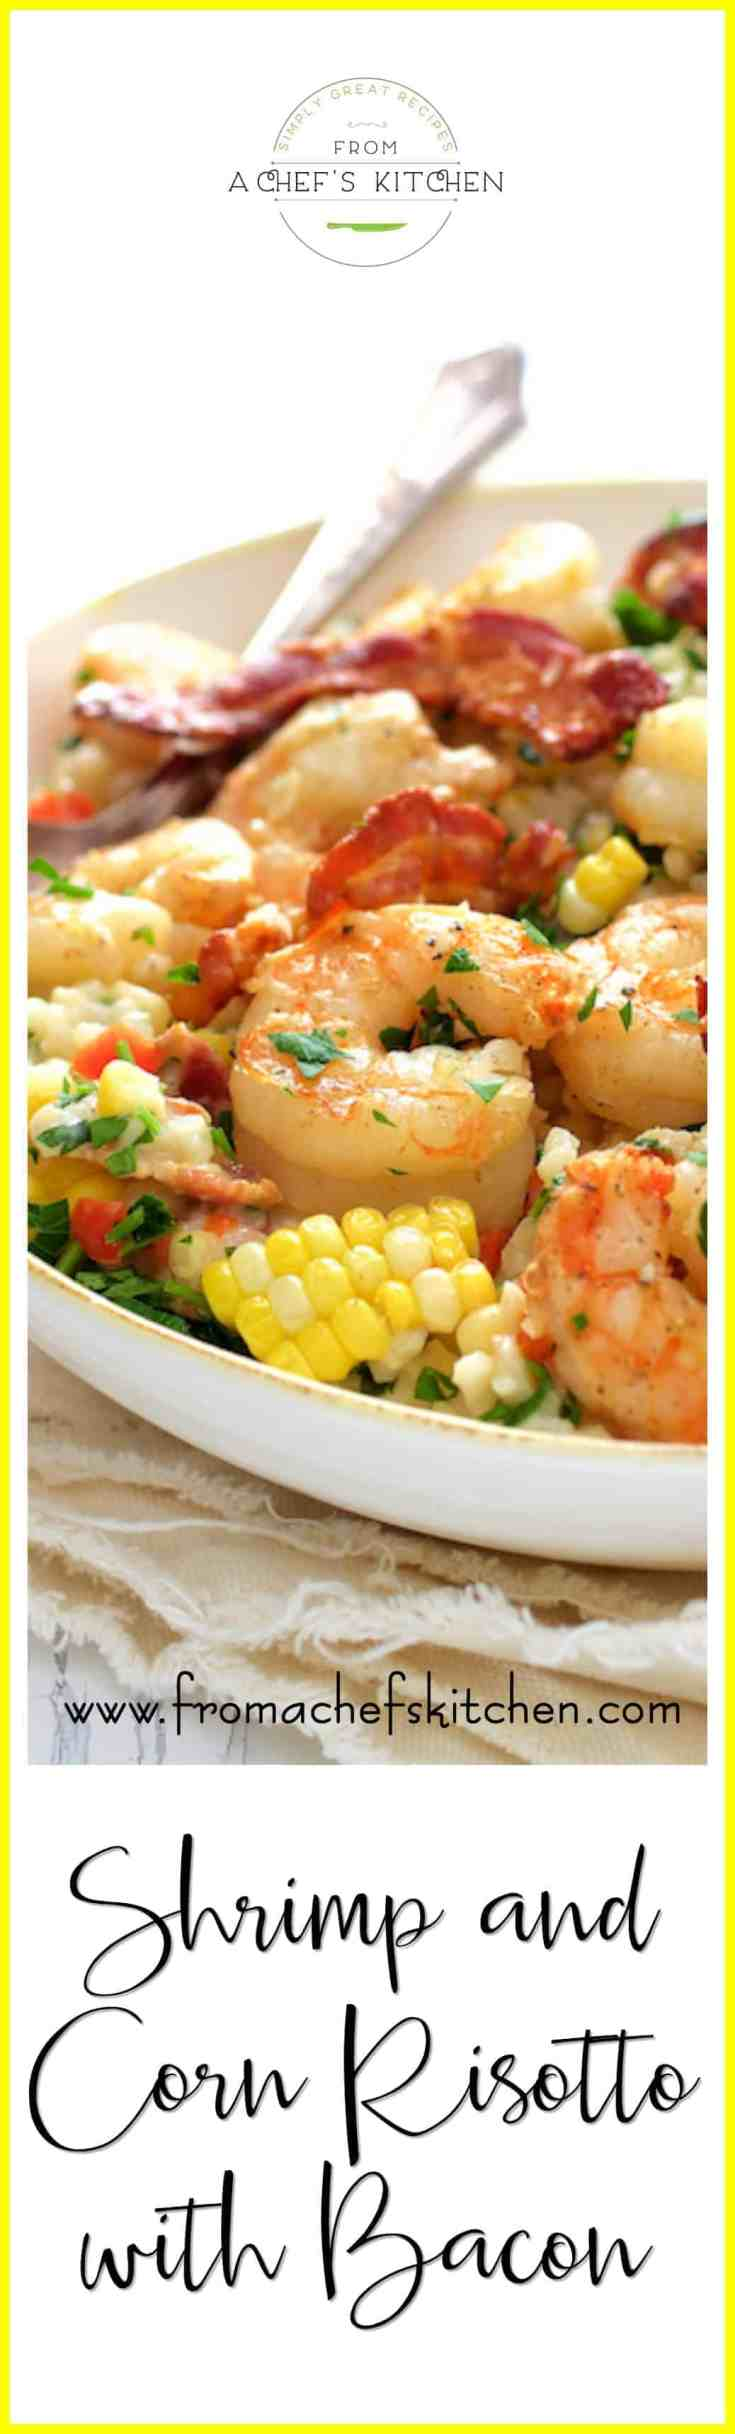 Shrimp and Corn Risotto with Bacon is an American twist on traditional risotto and the perfect summer comfort food! #shrimp #shrimprisotto #corn #risotto #bacon #seafood